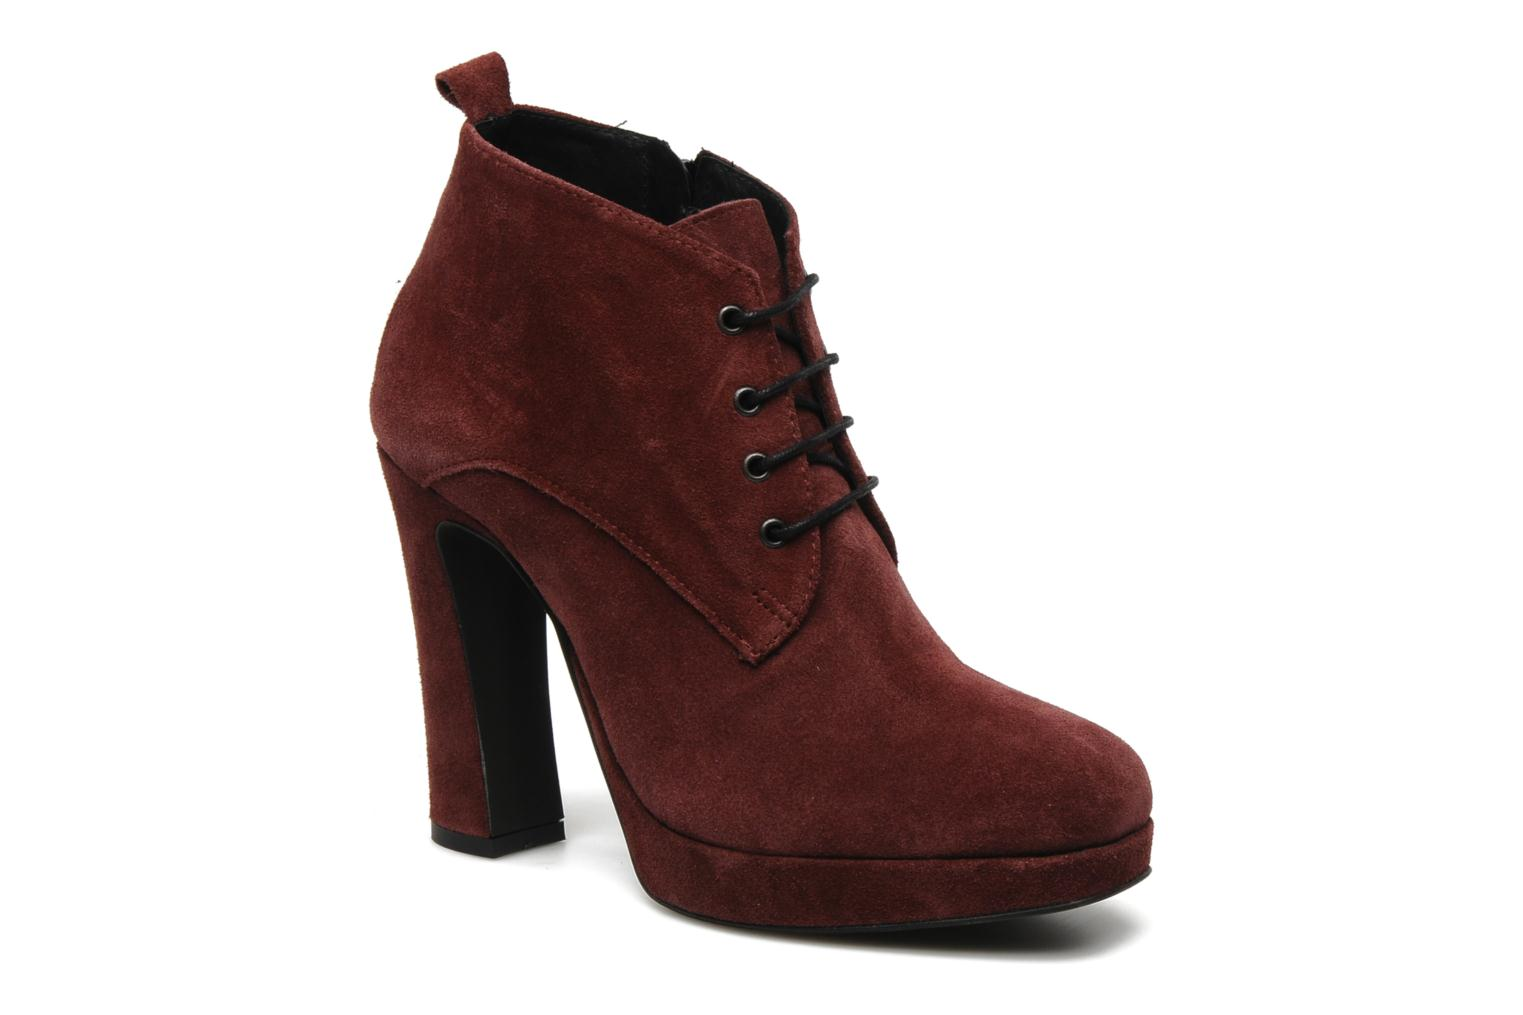 Marques Chaussure femme Georgia Rose femme Nuts Cow Suede Gris Br-901